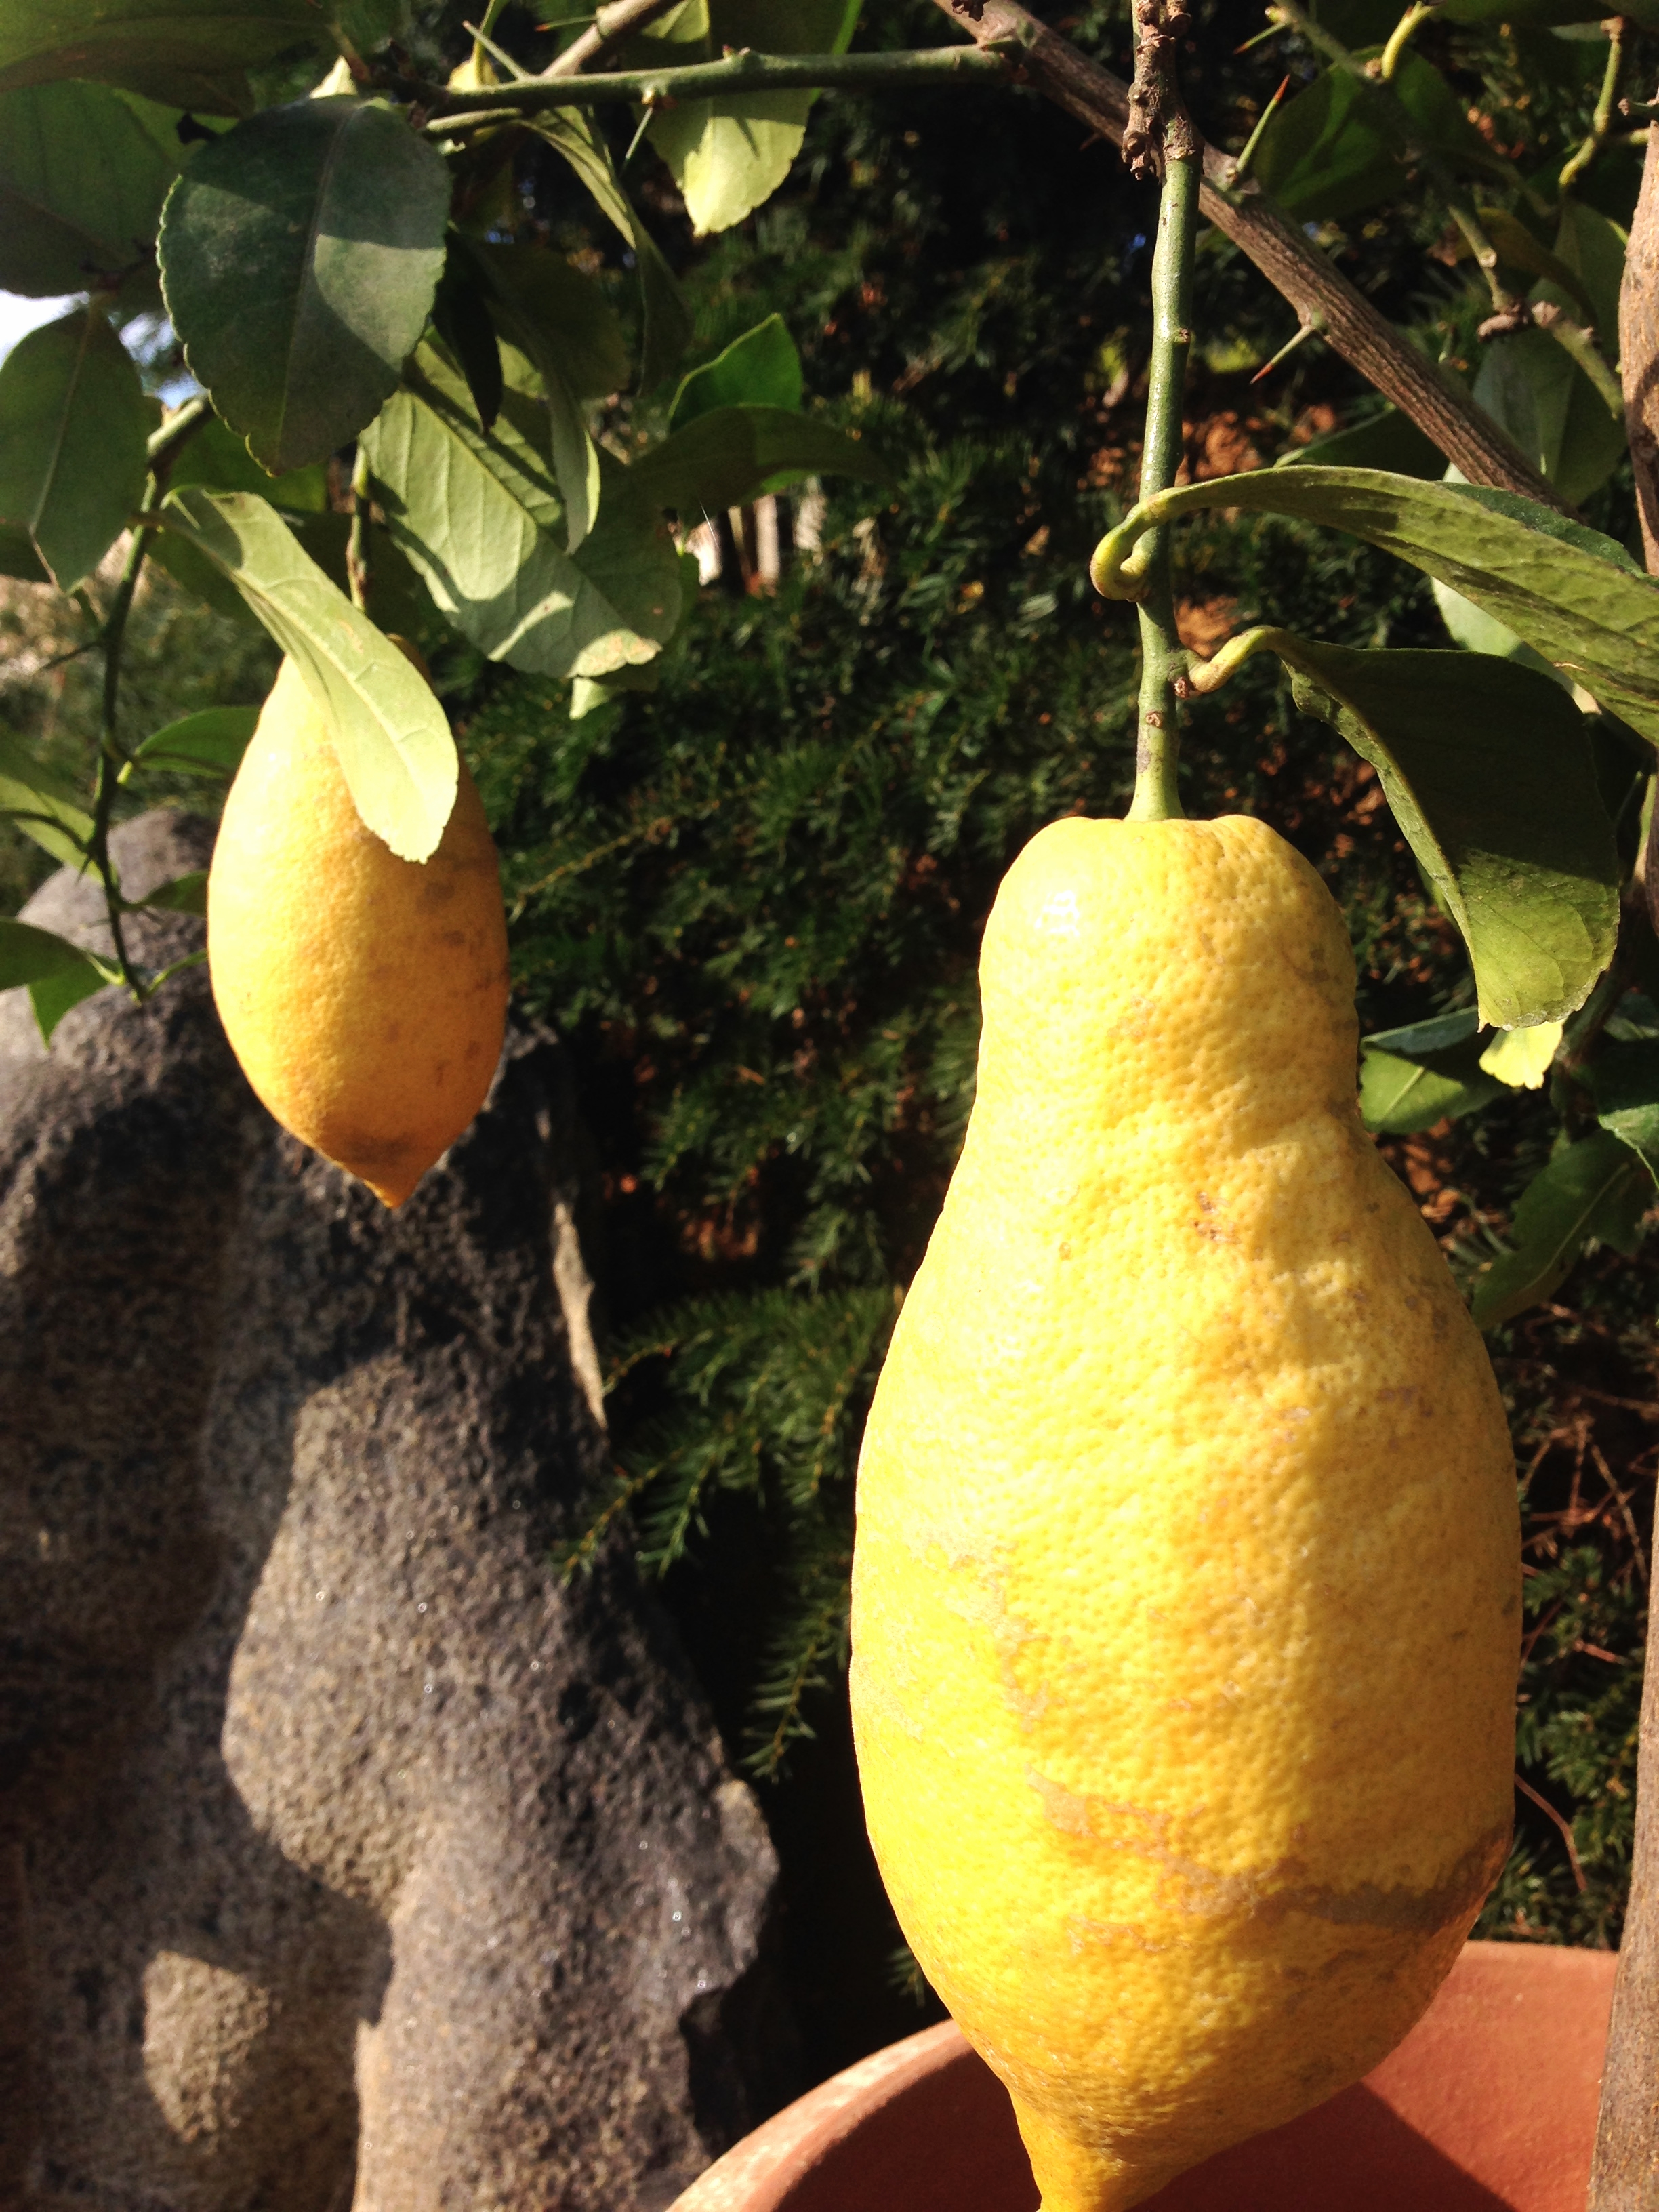 Ginormous lemons growing in a tub!!